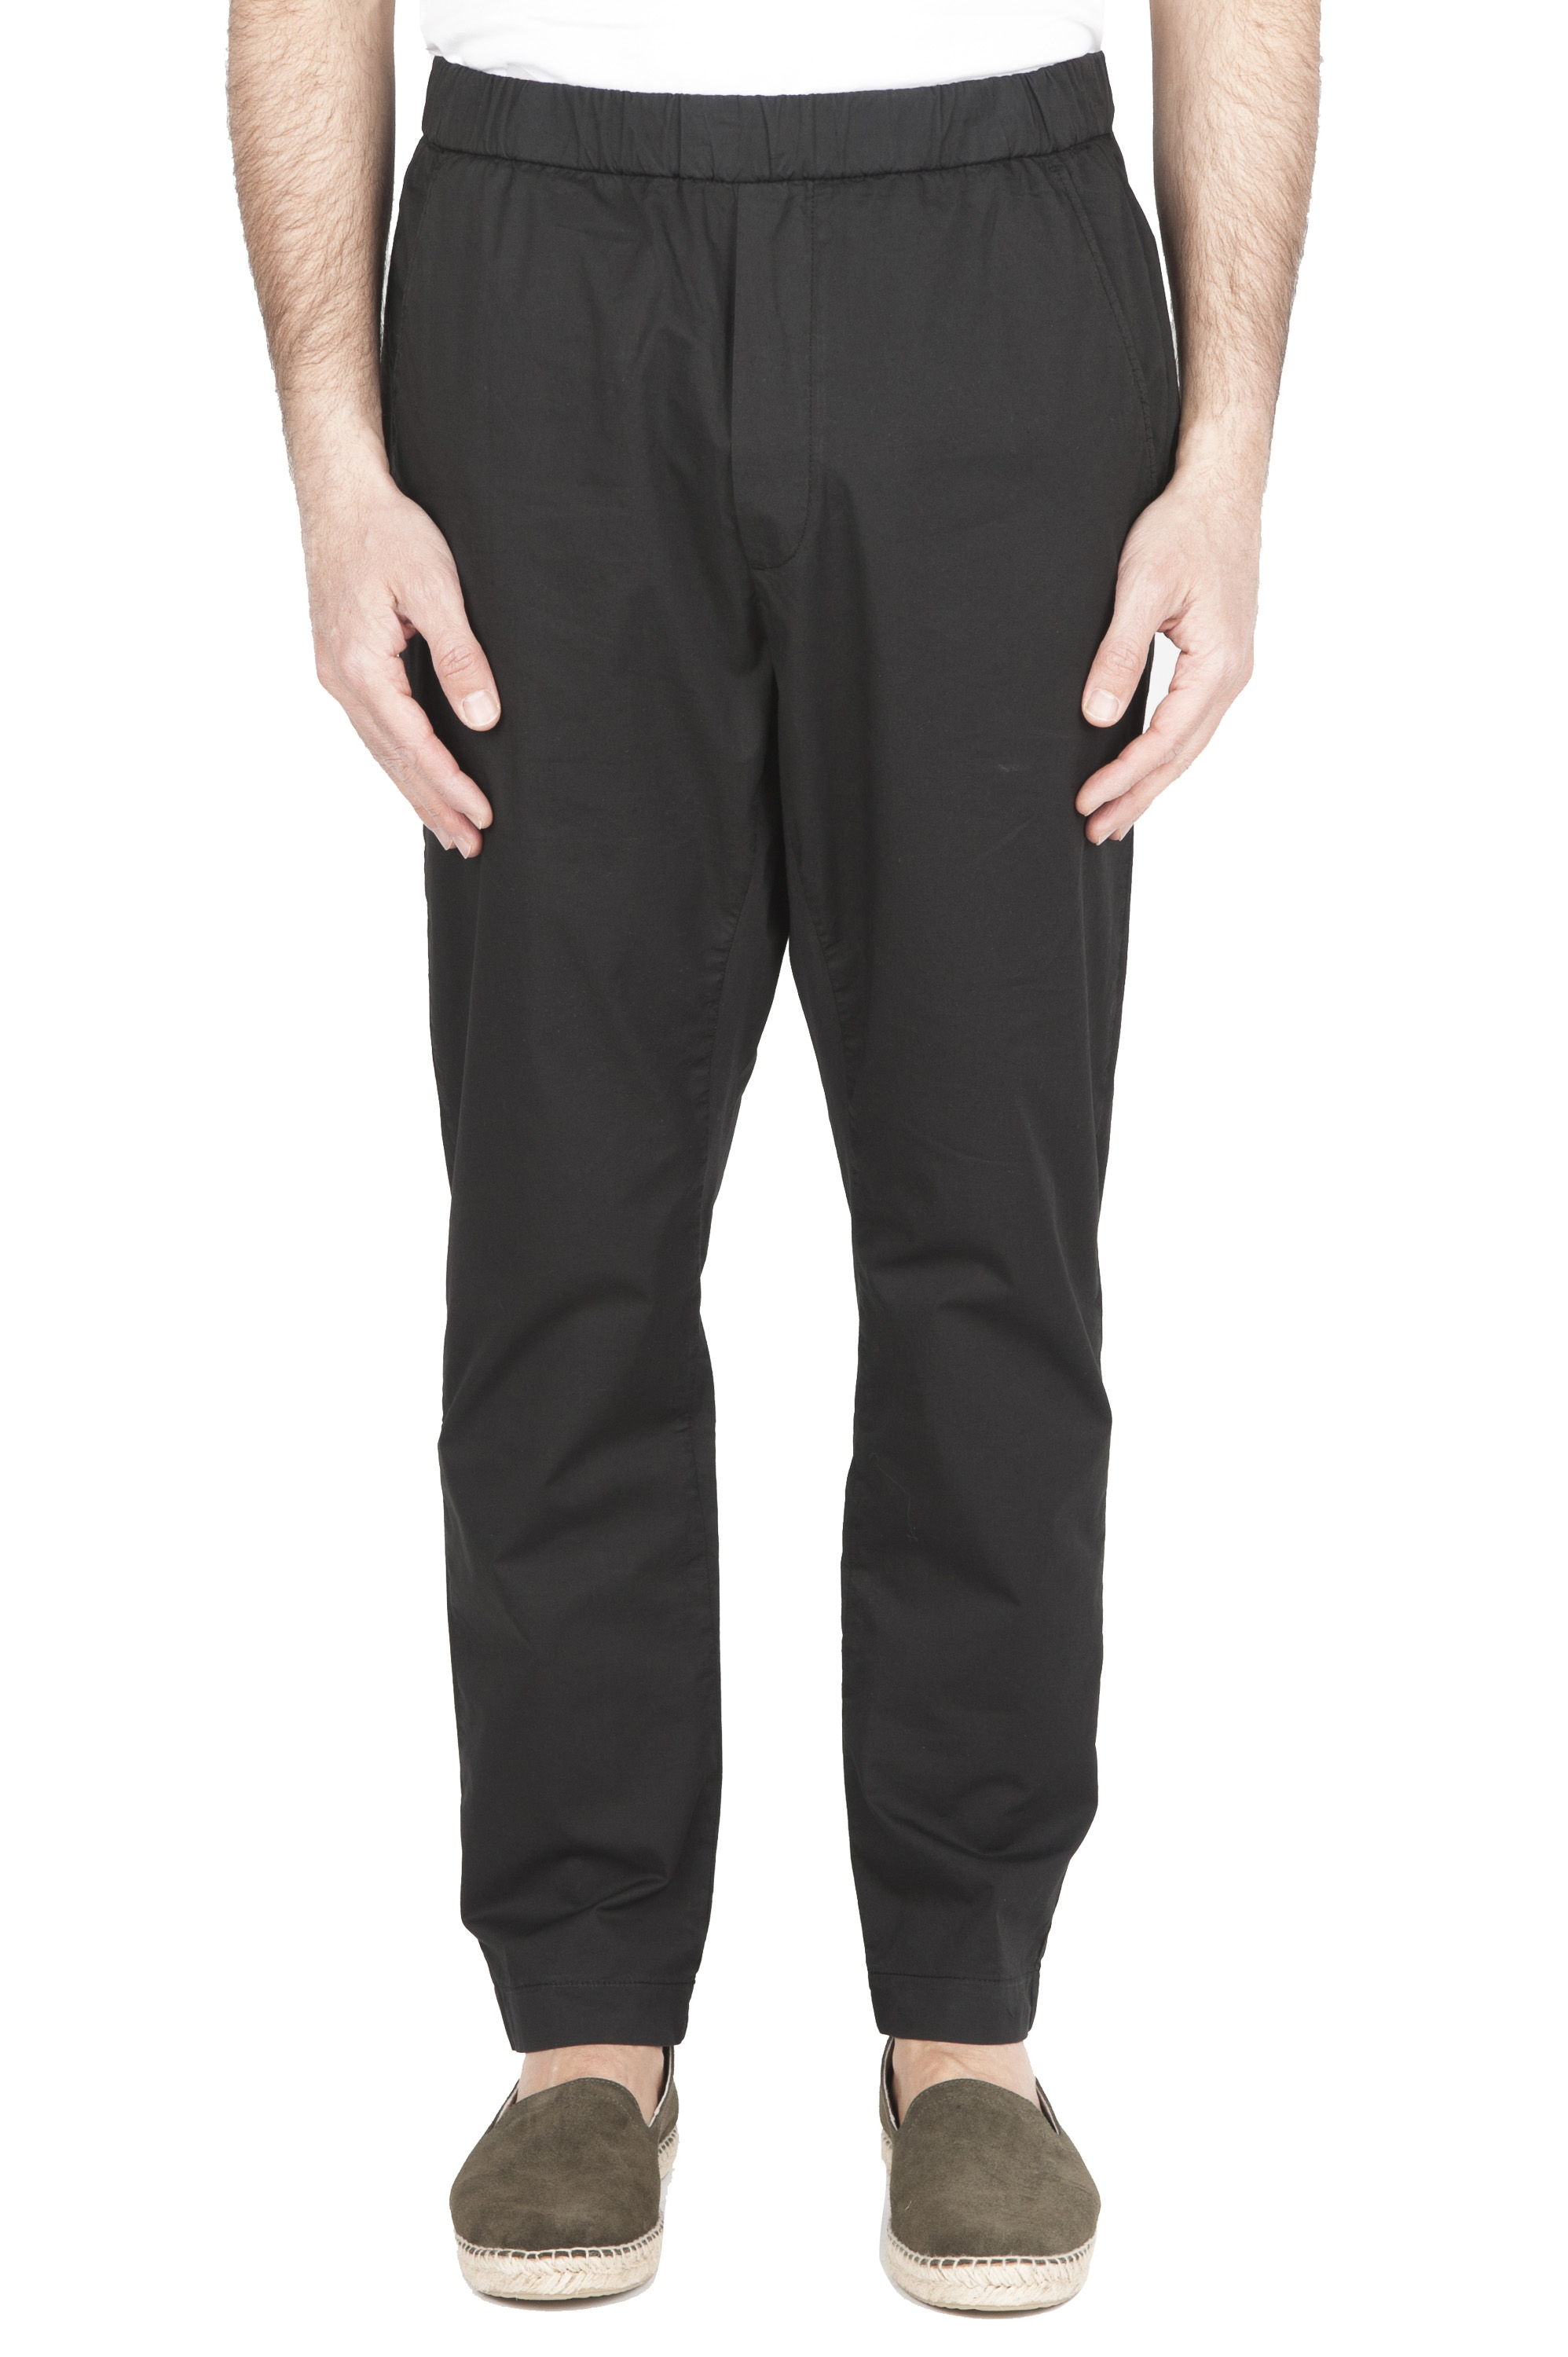 SBU 01785 Ultra-light jolly pants in black stretch cotton 01